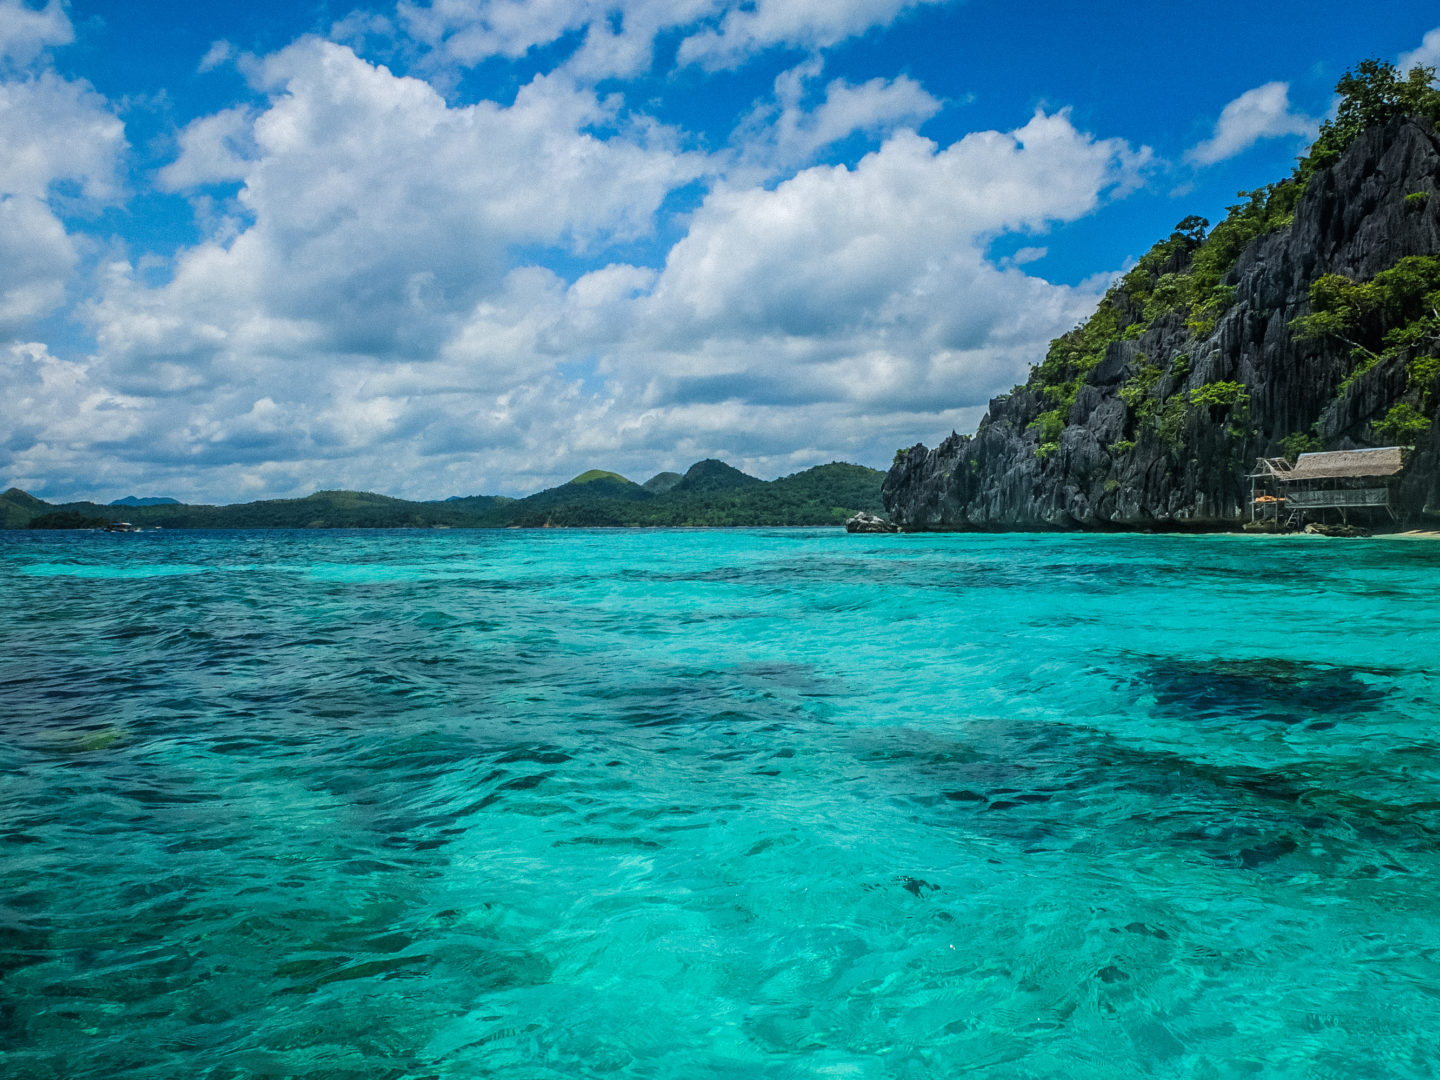 Coron Travel Guide: 4D3N Coron Itinerary - https://thejerny.com